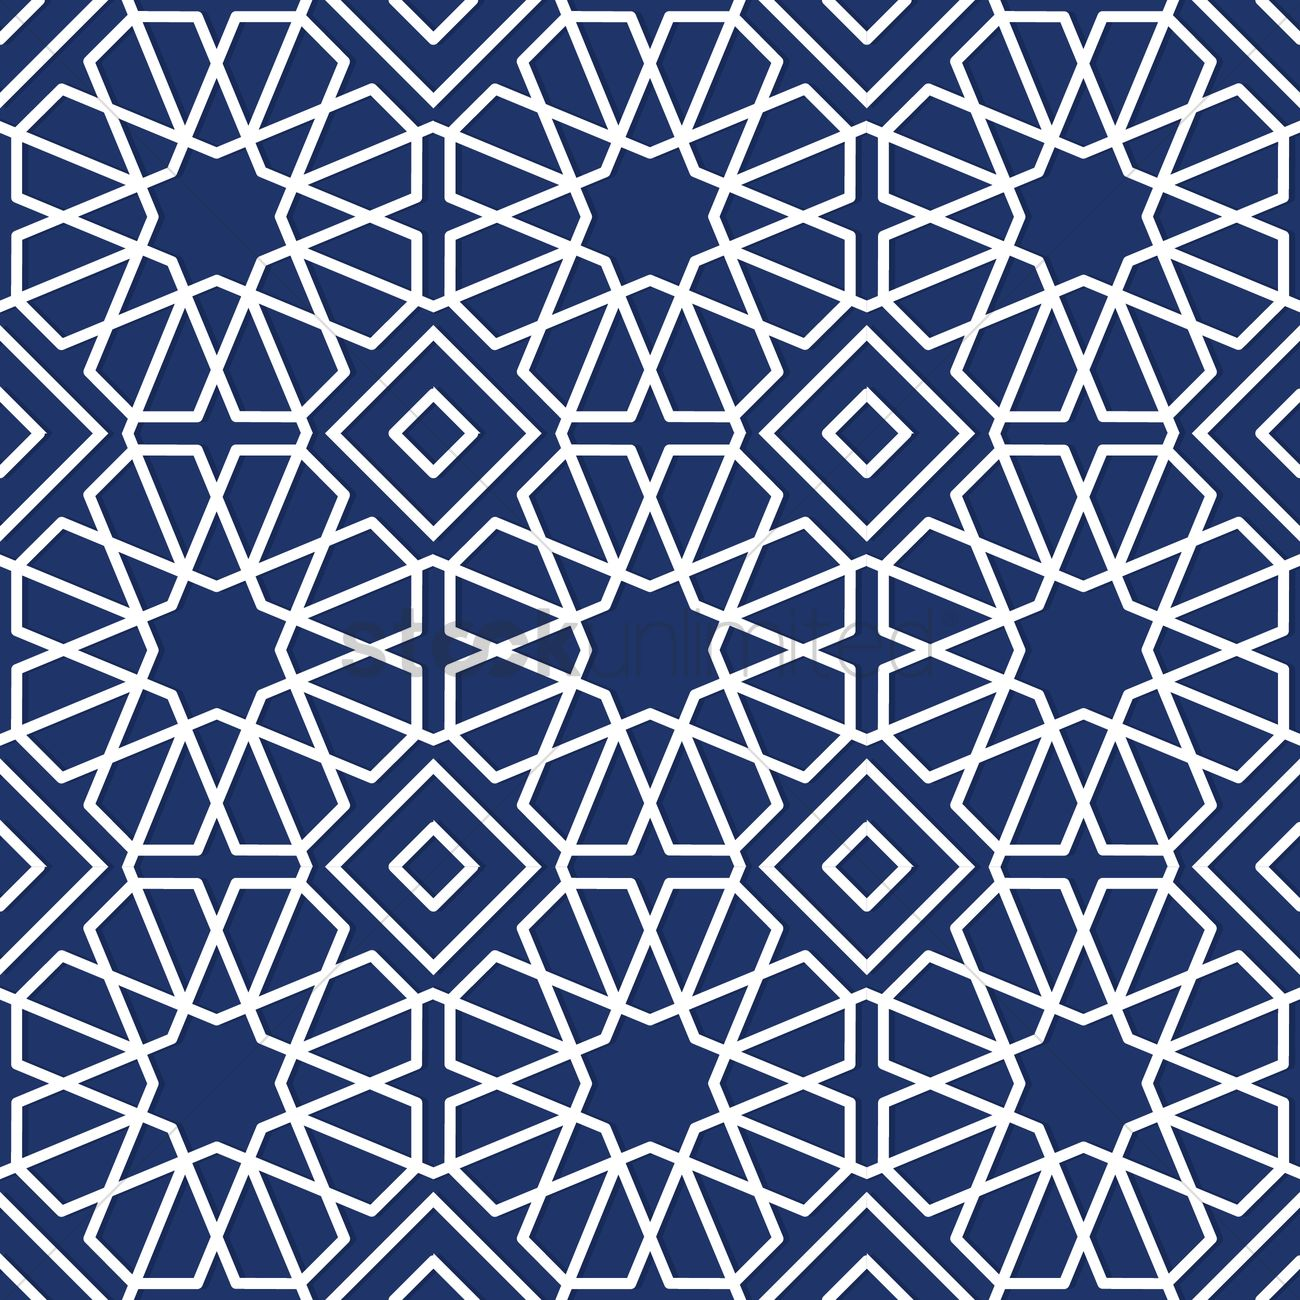 Islamic Geometric Patterns Vector at GetDrawings com | Free for